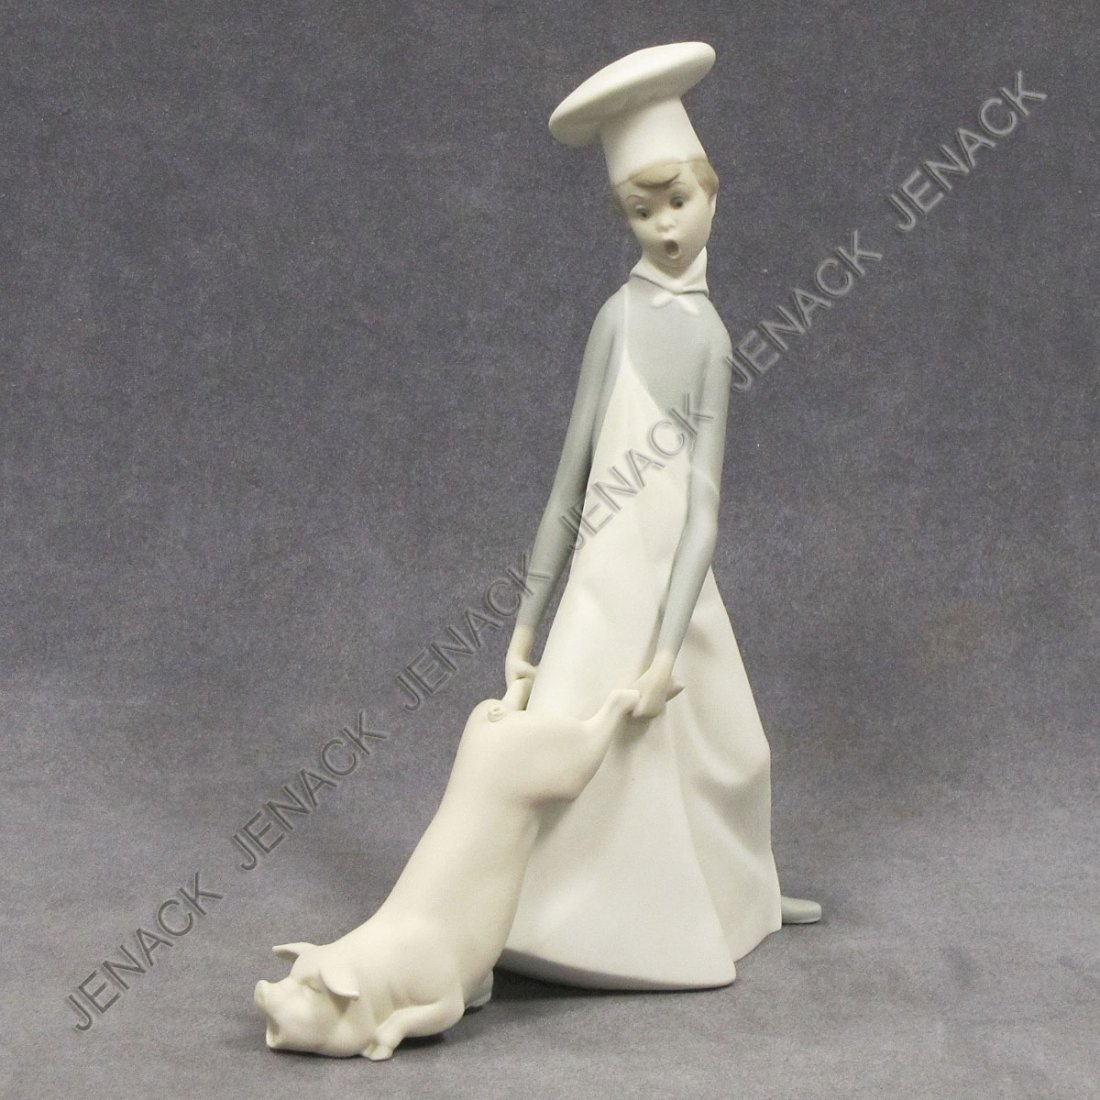 14: LLADRO PORCELAIN FIGURE, COOK IN TROUBLE, #4608